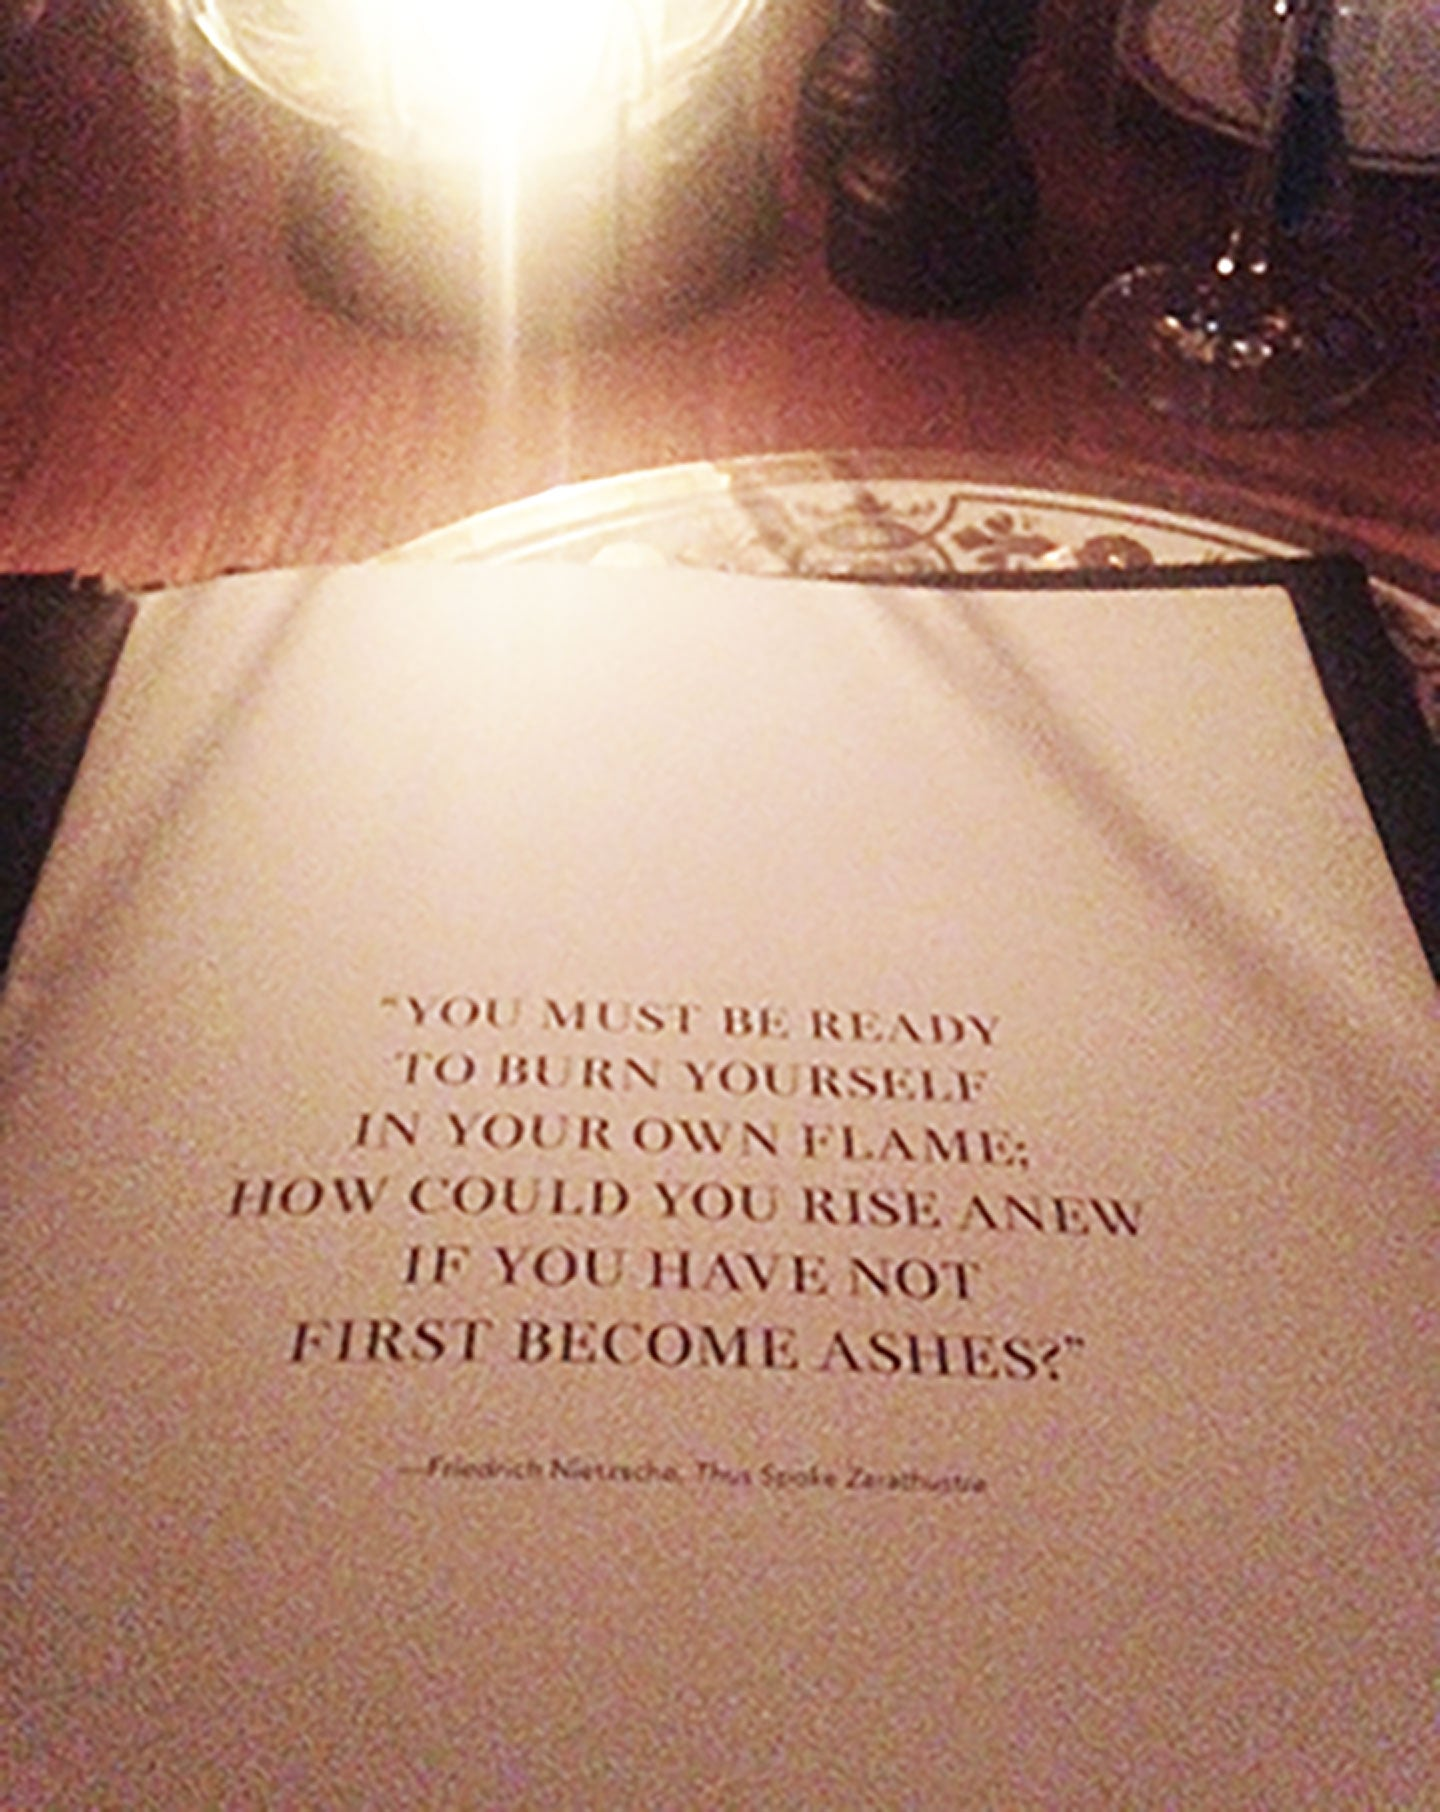 Faena Hotel menu Inspirational message